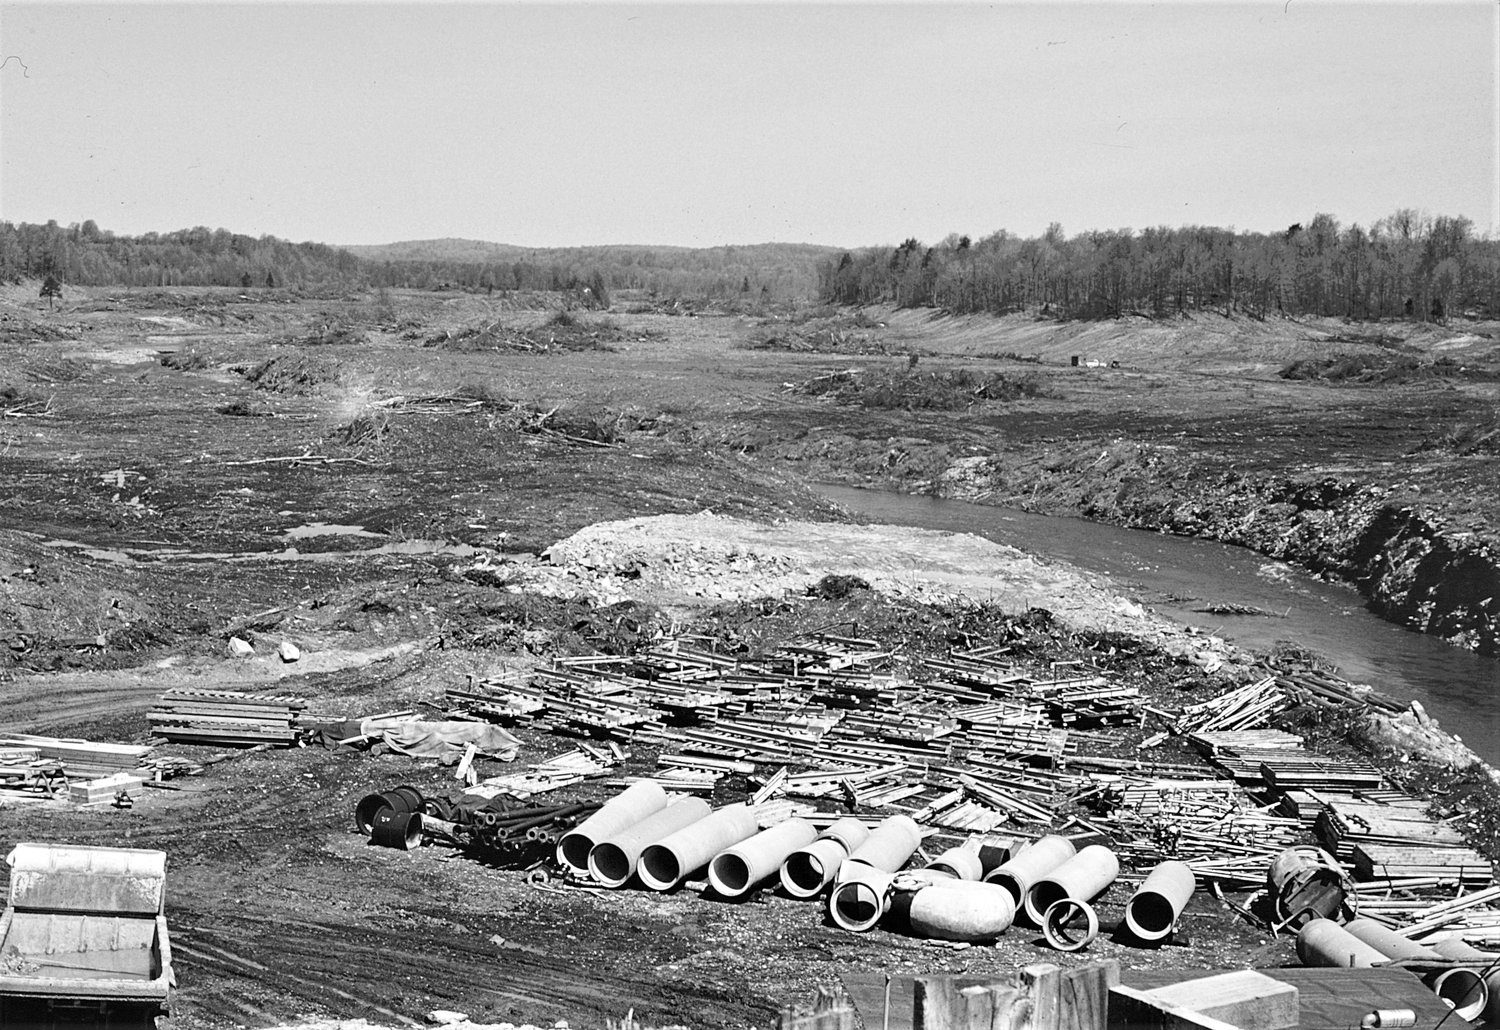 PIPING IT IN — Pipes lay in the foreground, as construction begins on the Boyd Dam in this photo, taken in May 1958. In the background is part of the 400-acre Lake Tagasoke.